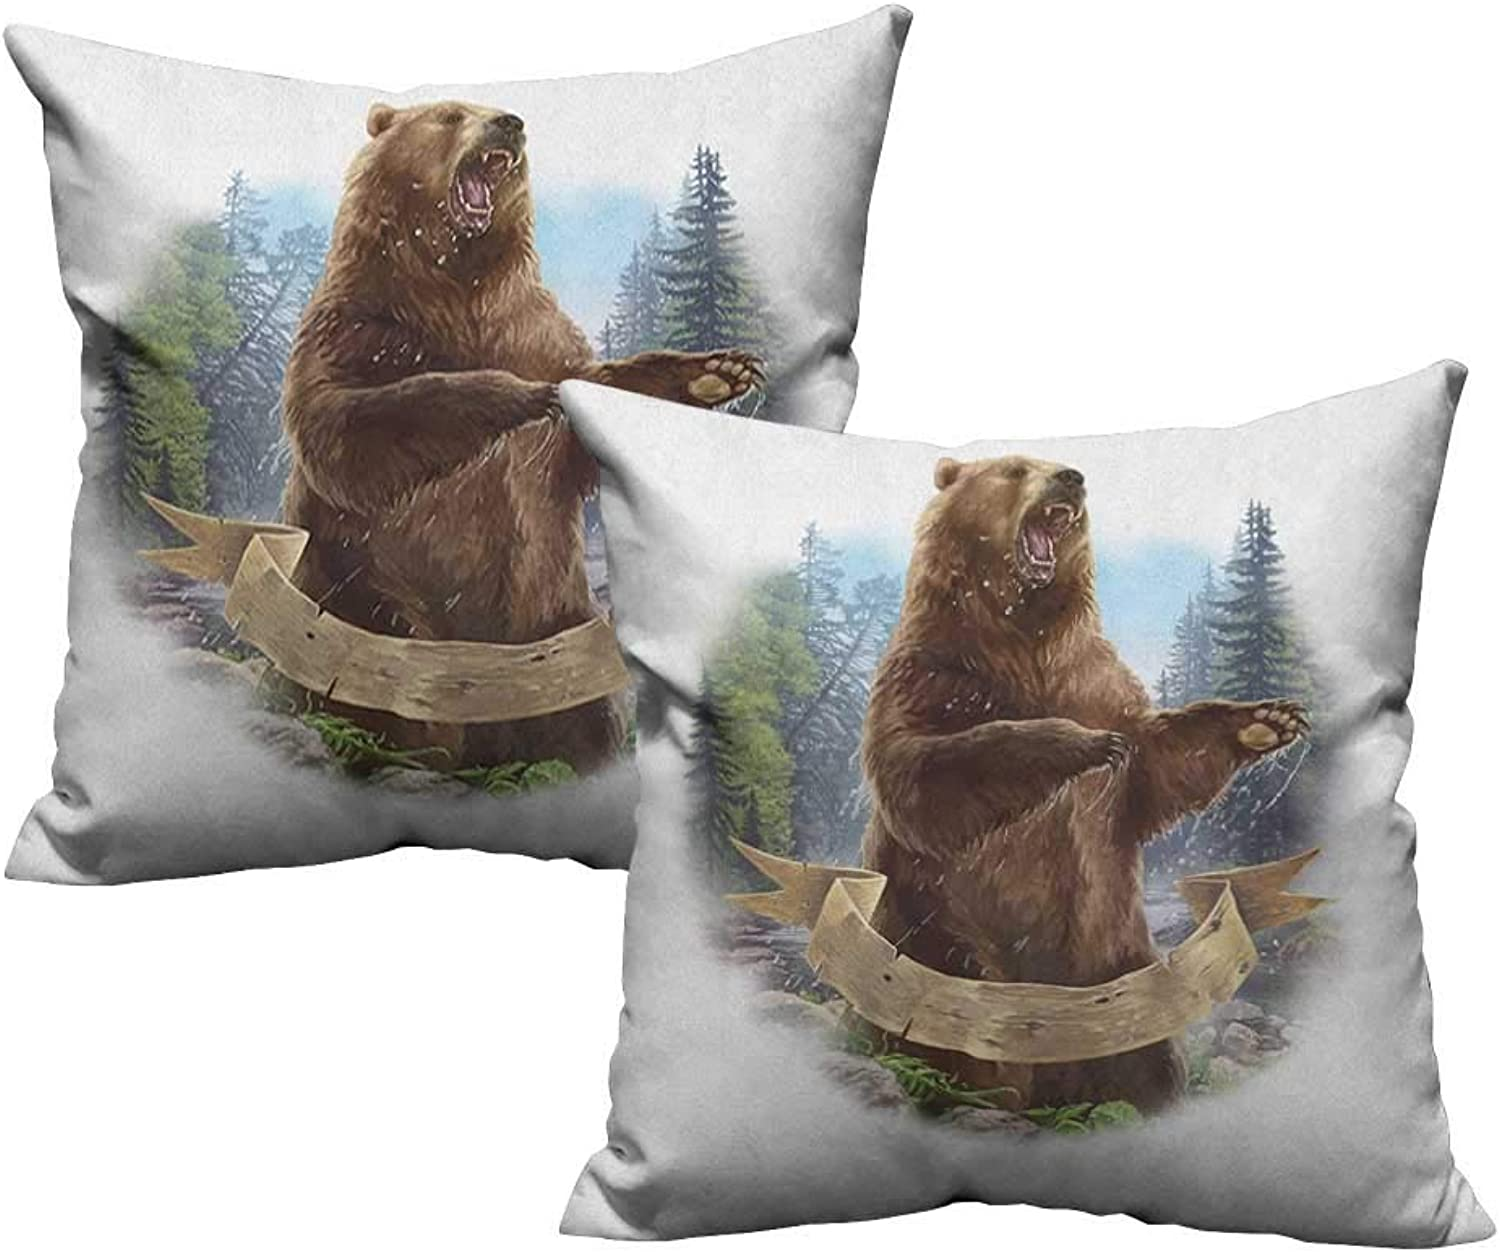 RuppertTextile Polyester Pillowcase Bear Angry Mammal Carnivore Attacking Wilderness Forest Realistic Illustration Without core W20 xL20 2 pcs